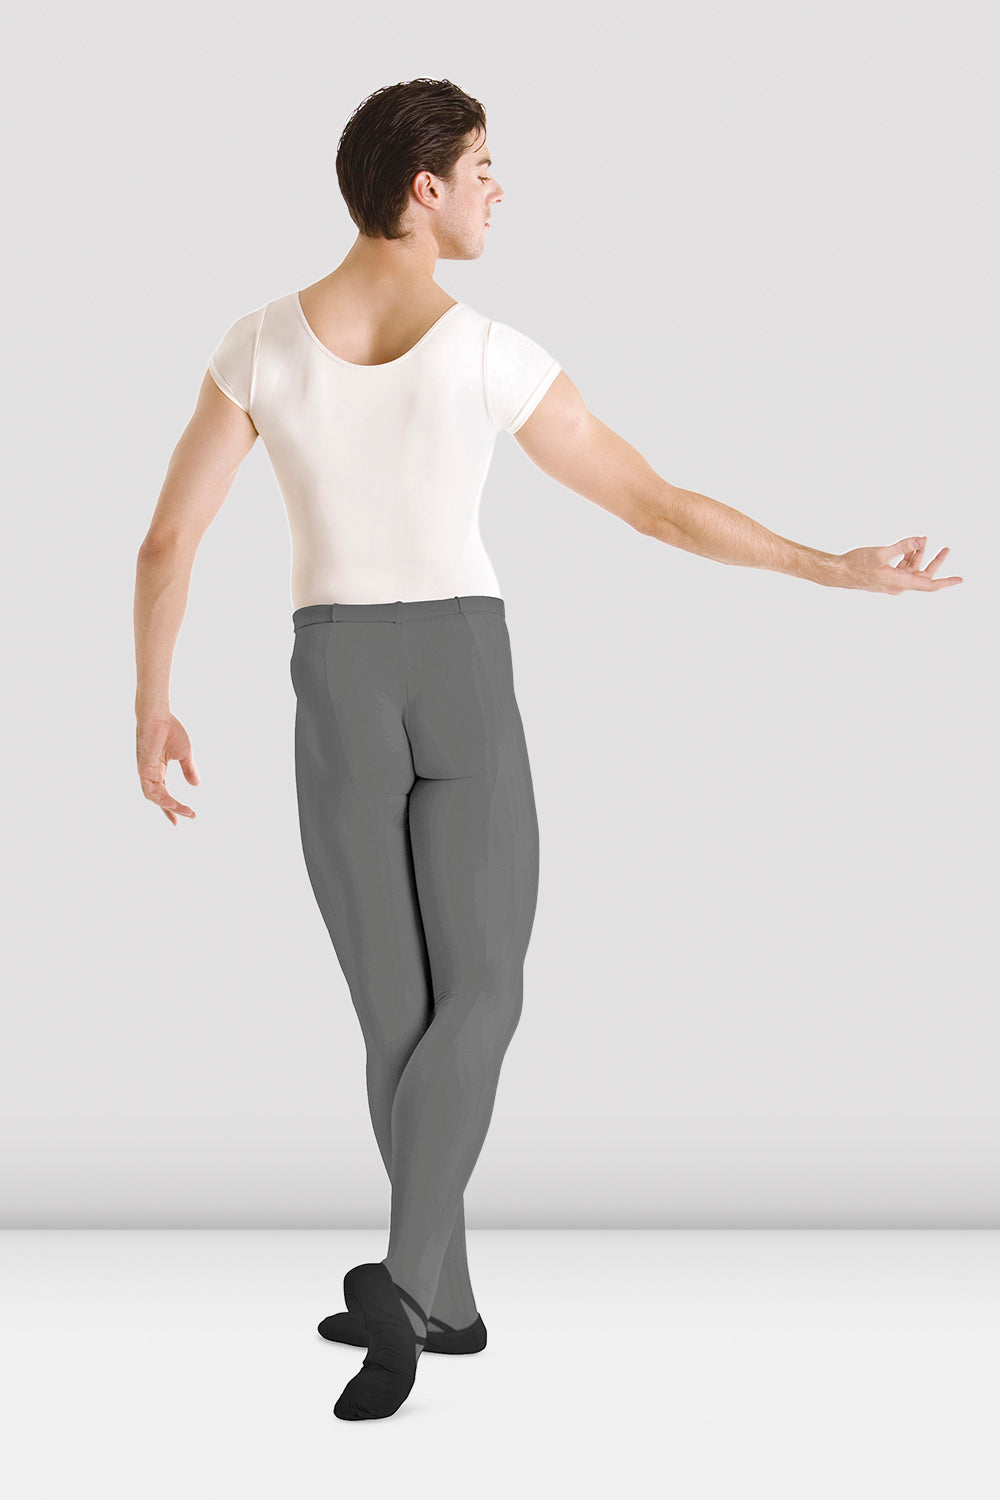 Mens Footed Tights